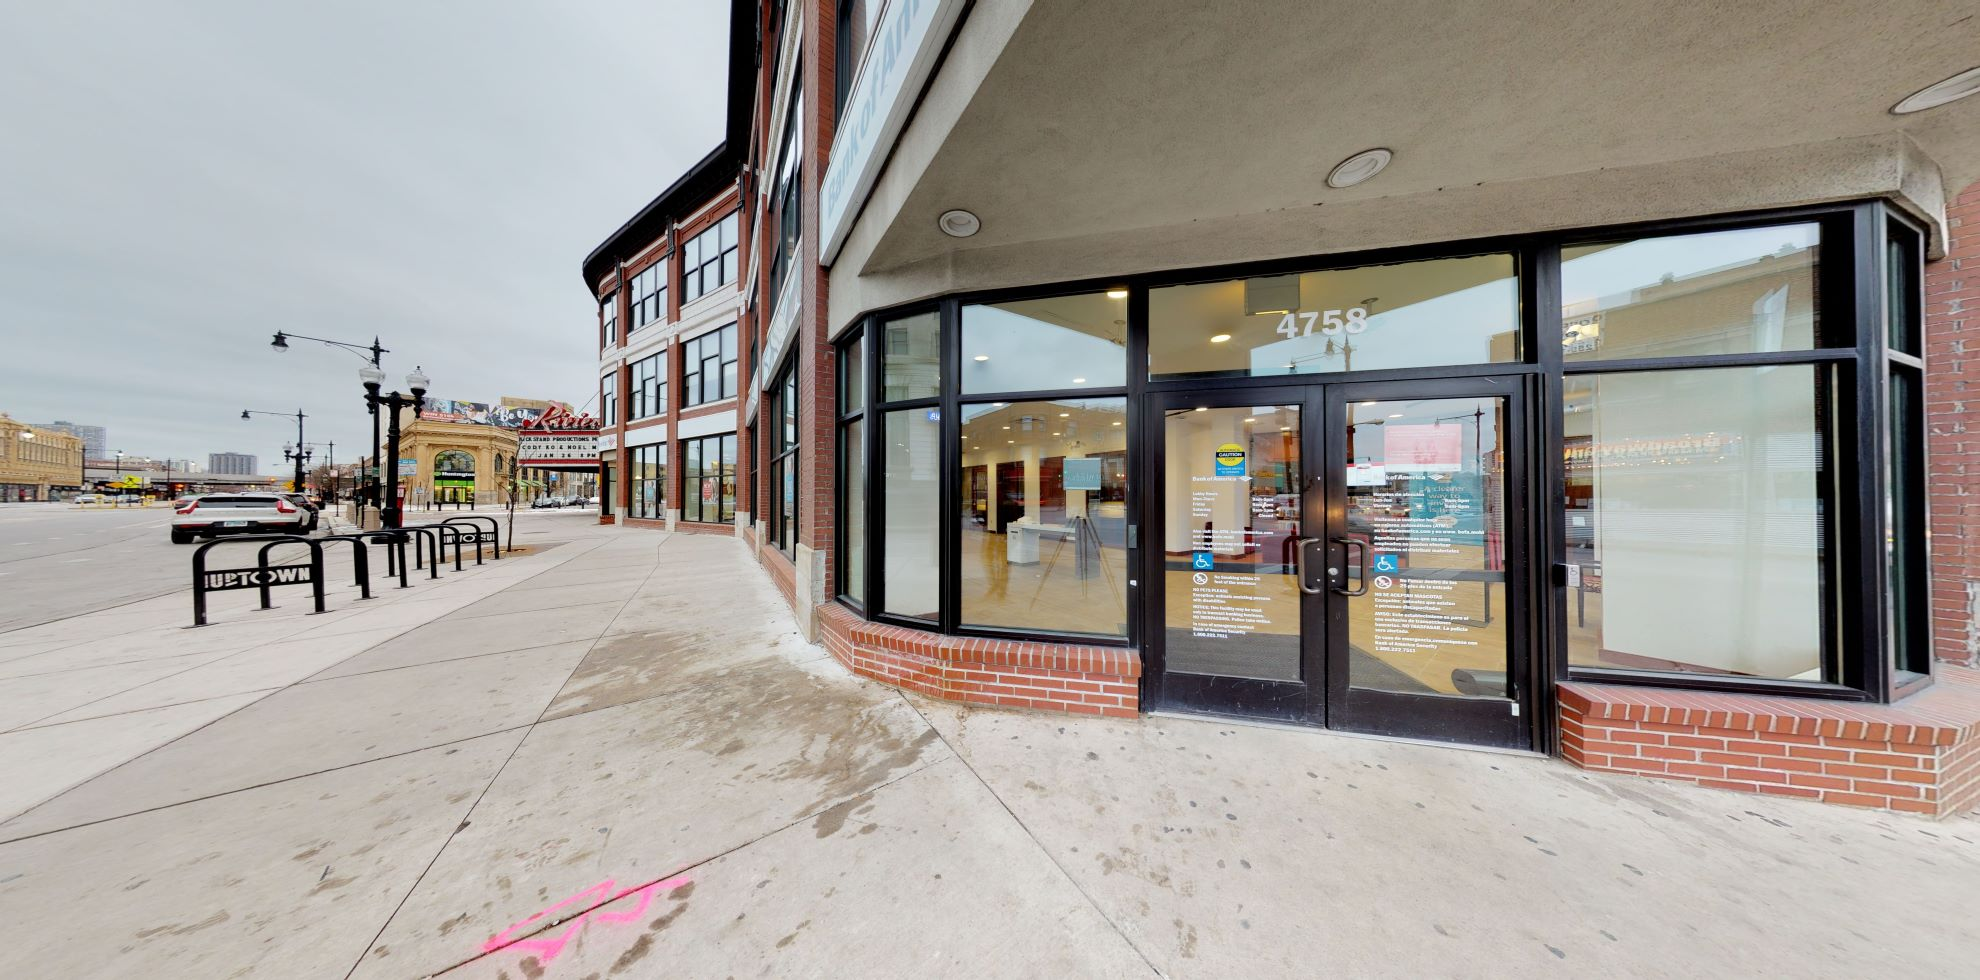 Bank of America financial center with walk-up ATM | 4758 N Racine Ave, Chicago, IL 60640